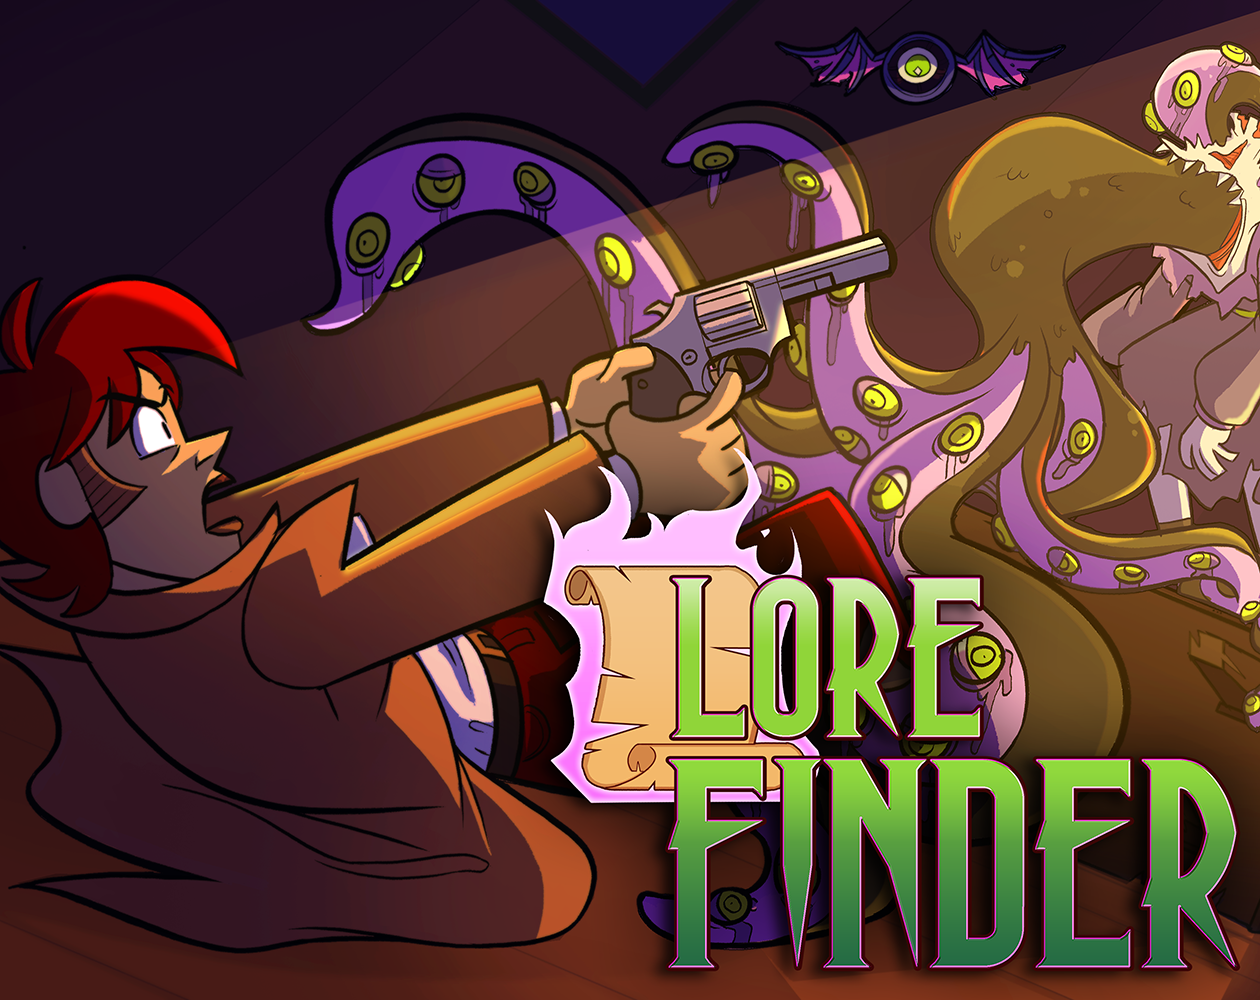 Lore Finder - Explore the depths of a creepy old mansion in this demo for an exciting metroidvania!